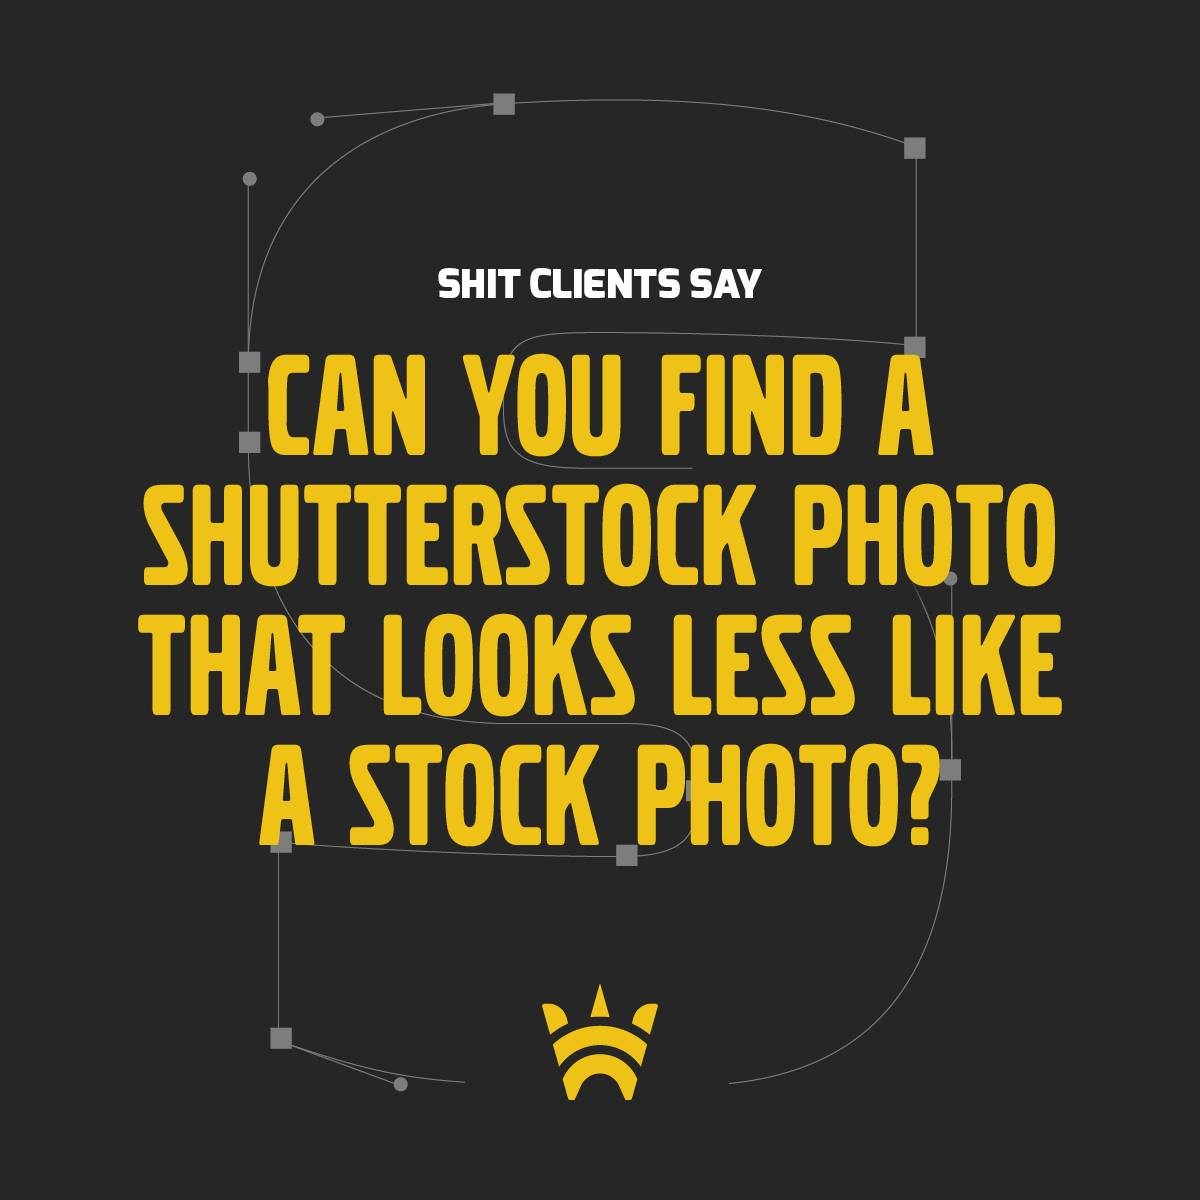 Can you find a Shutterstock photo that looks less like a stock photo?